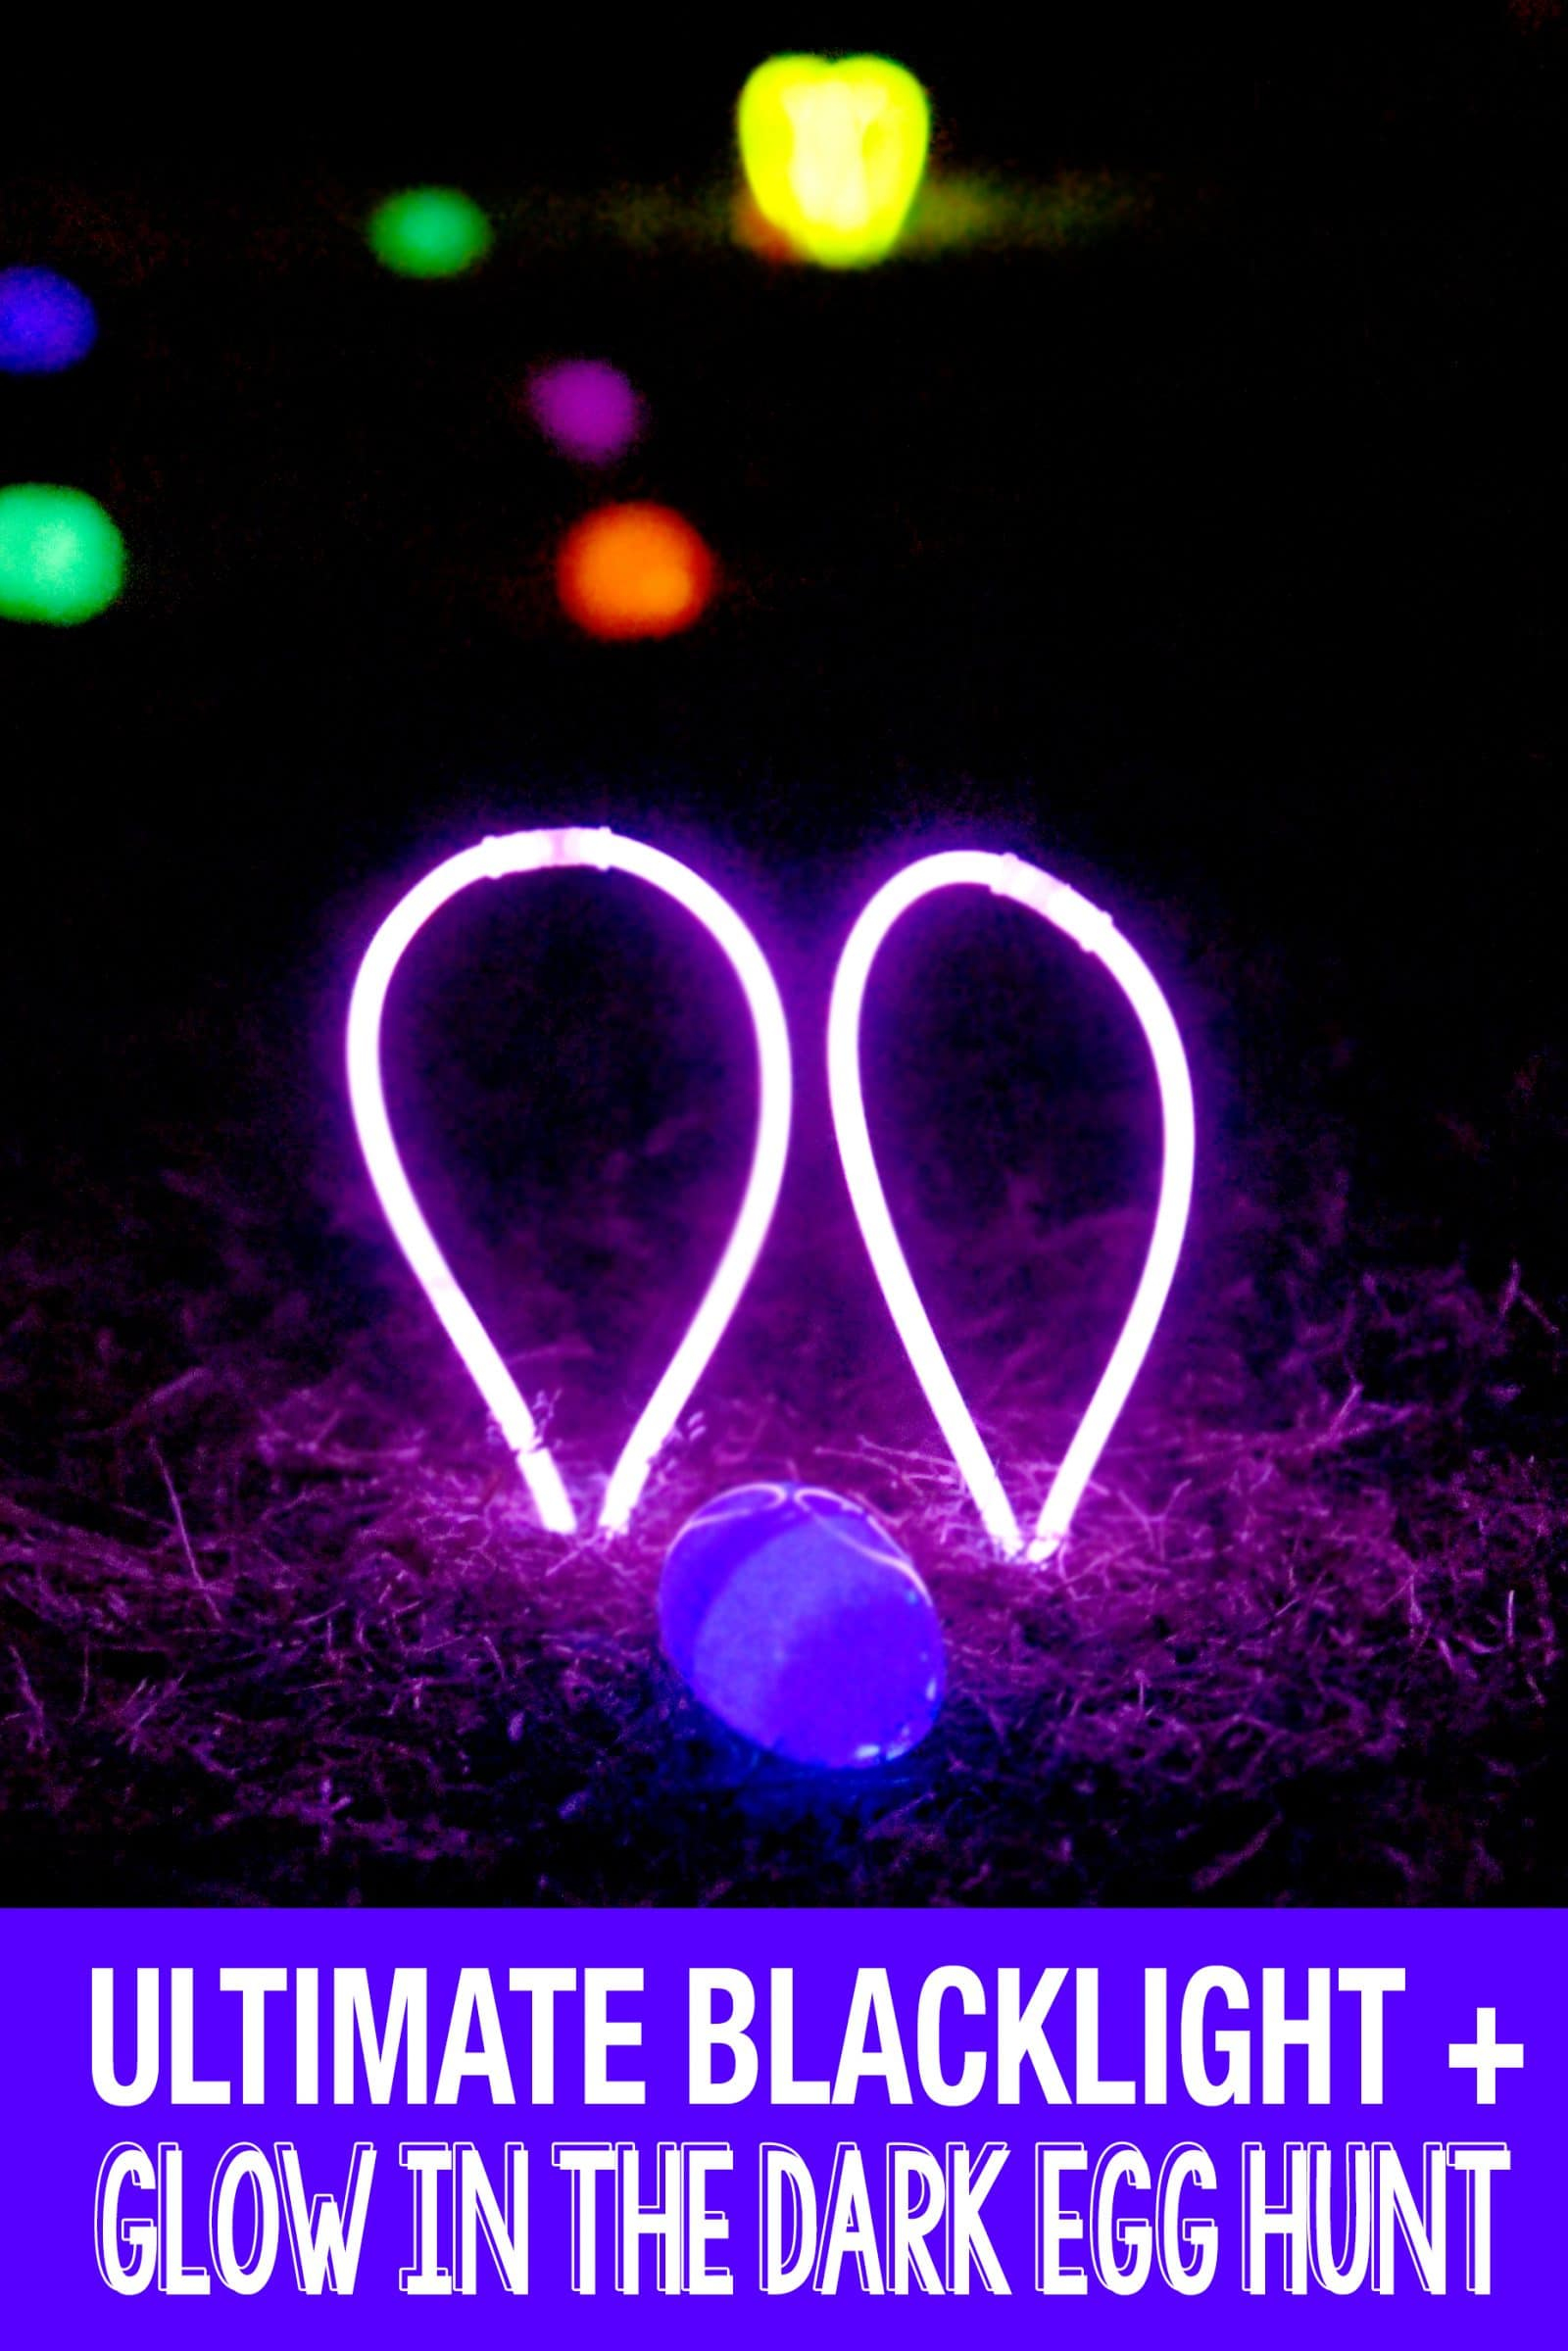 We upgraded our Easter Egg Hunt game this year and we had a Glow in the Dark Egg Hunt with glowing eggs and blacklight reactive eggs too! It's fun for the big kids to find the eggs using a blacklight flashlight and the glowing ones for the littler kids! #easter #easteregghunt